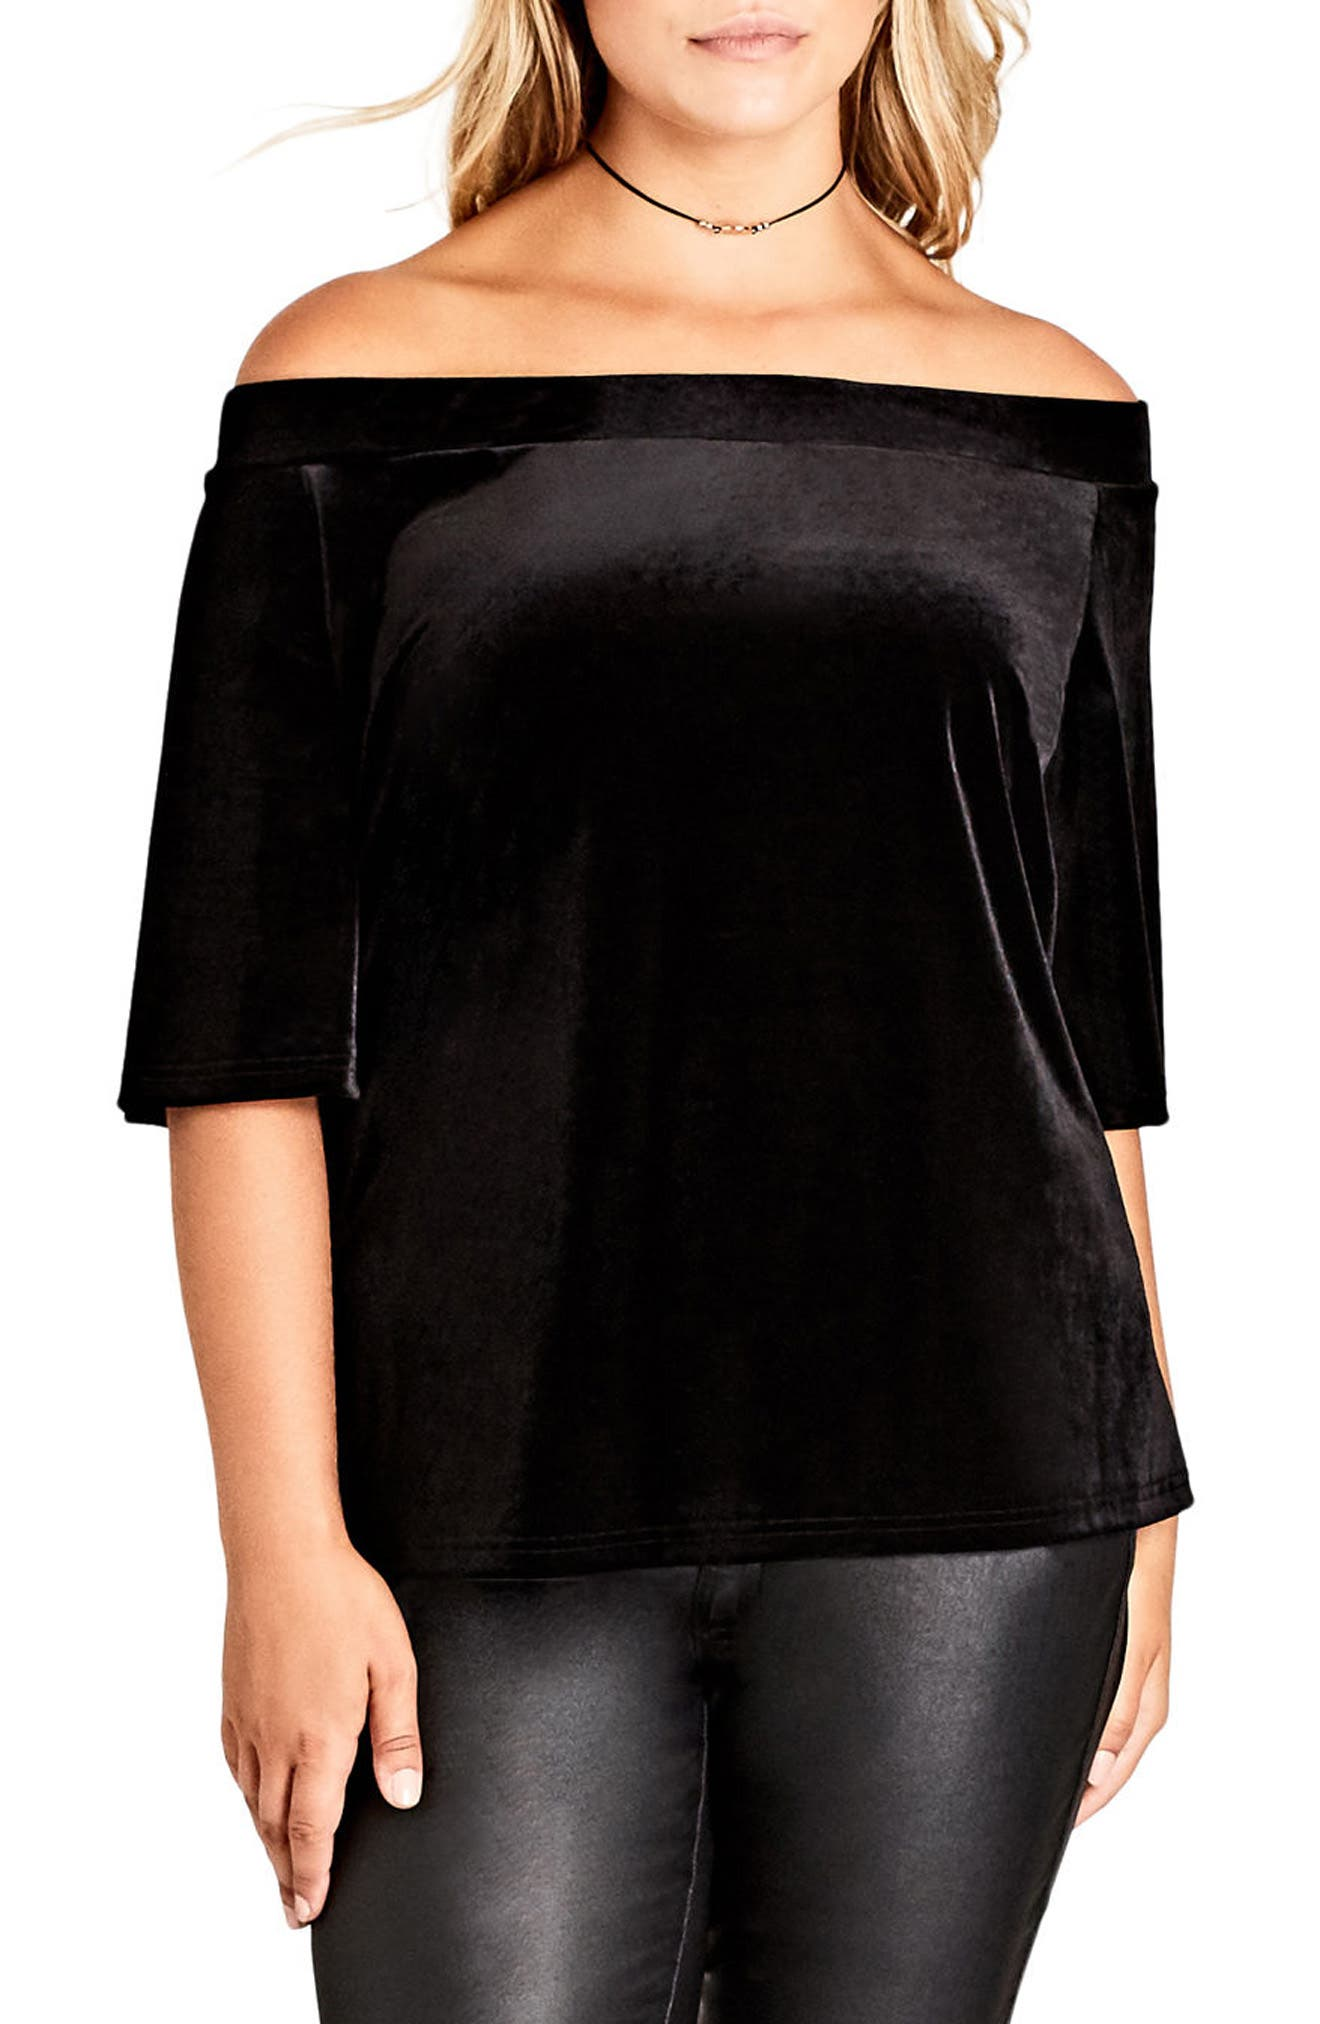 Main Image - City Chic Stretch Velvet Off the Shoulder Top (Plus Size)